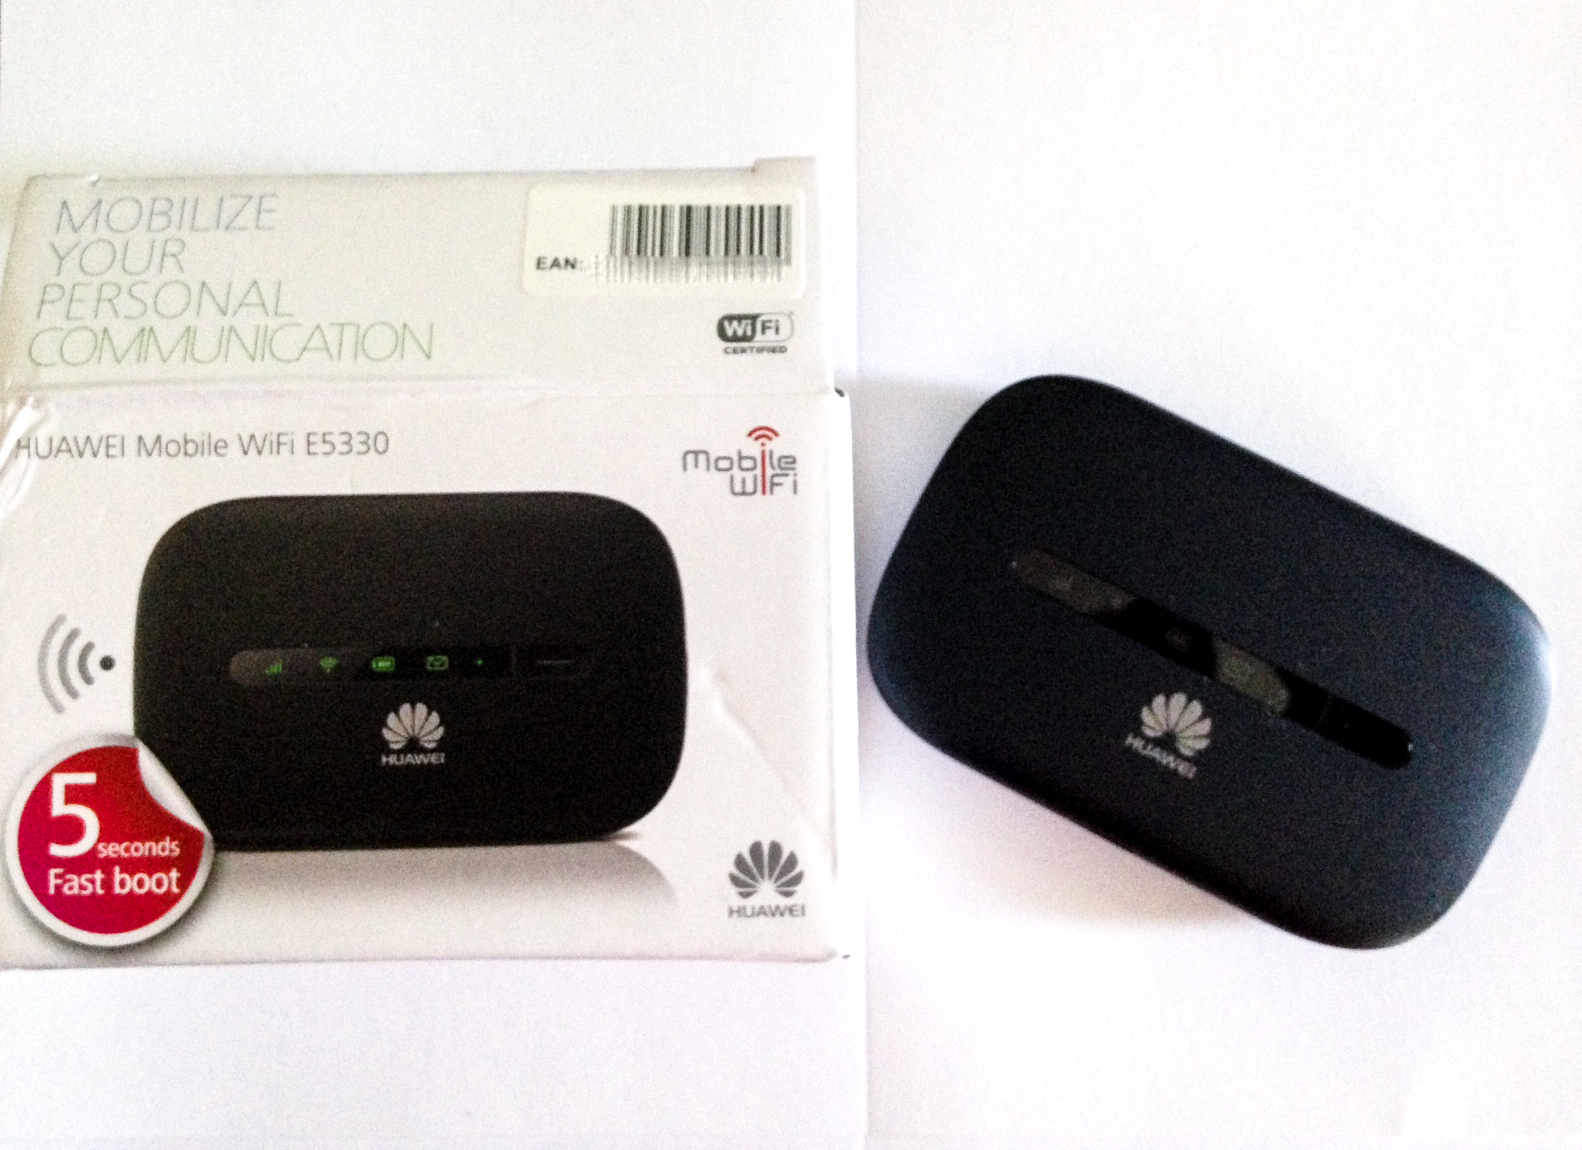 a WIFI device for travel